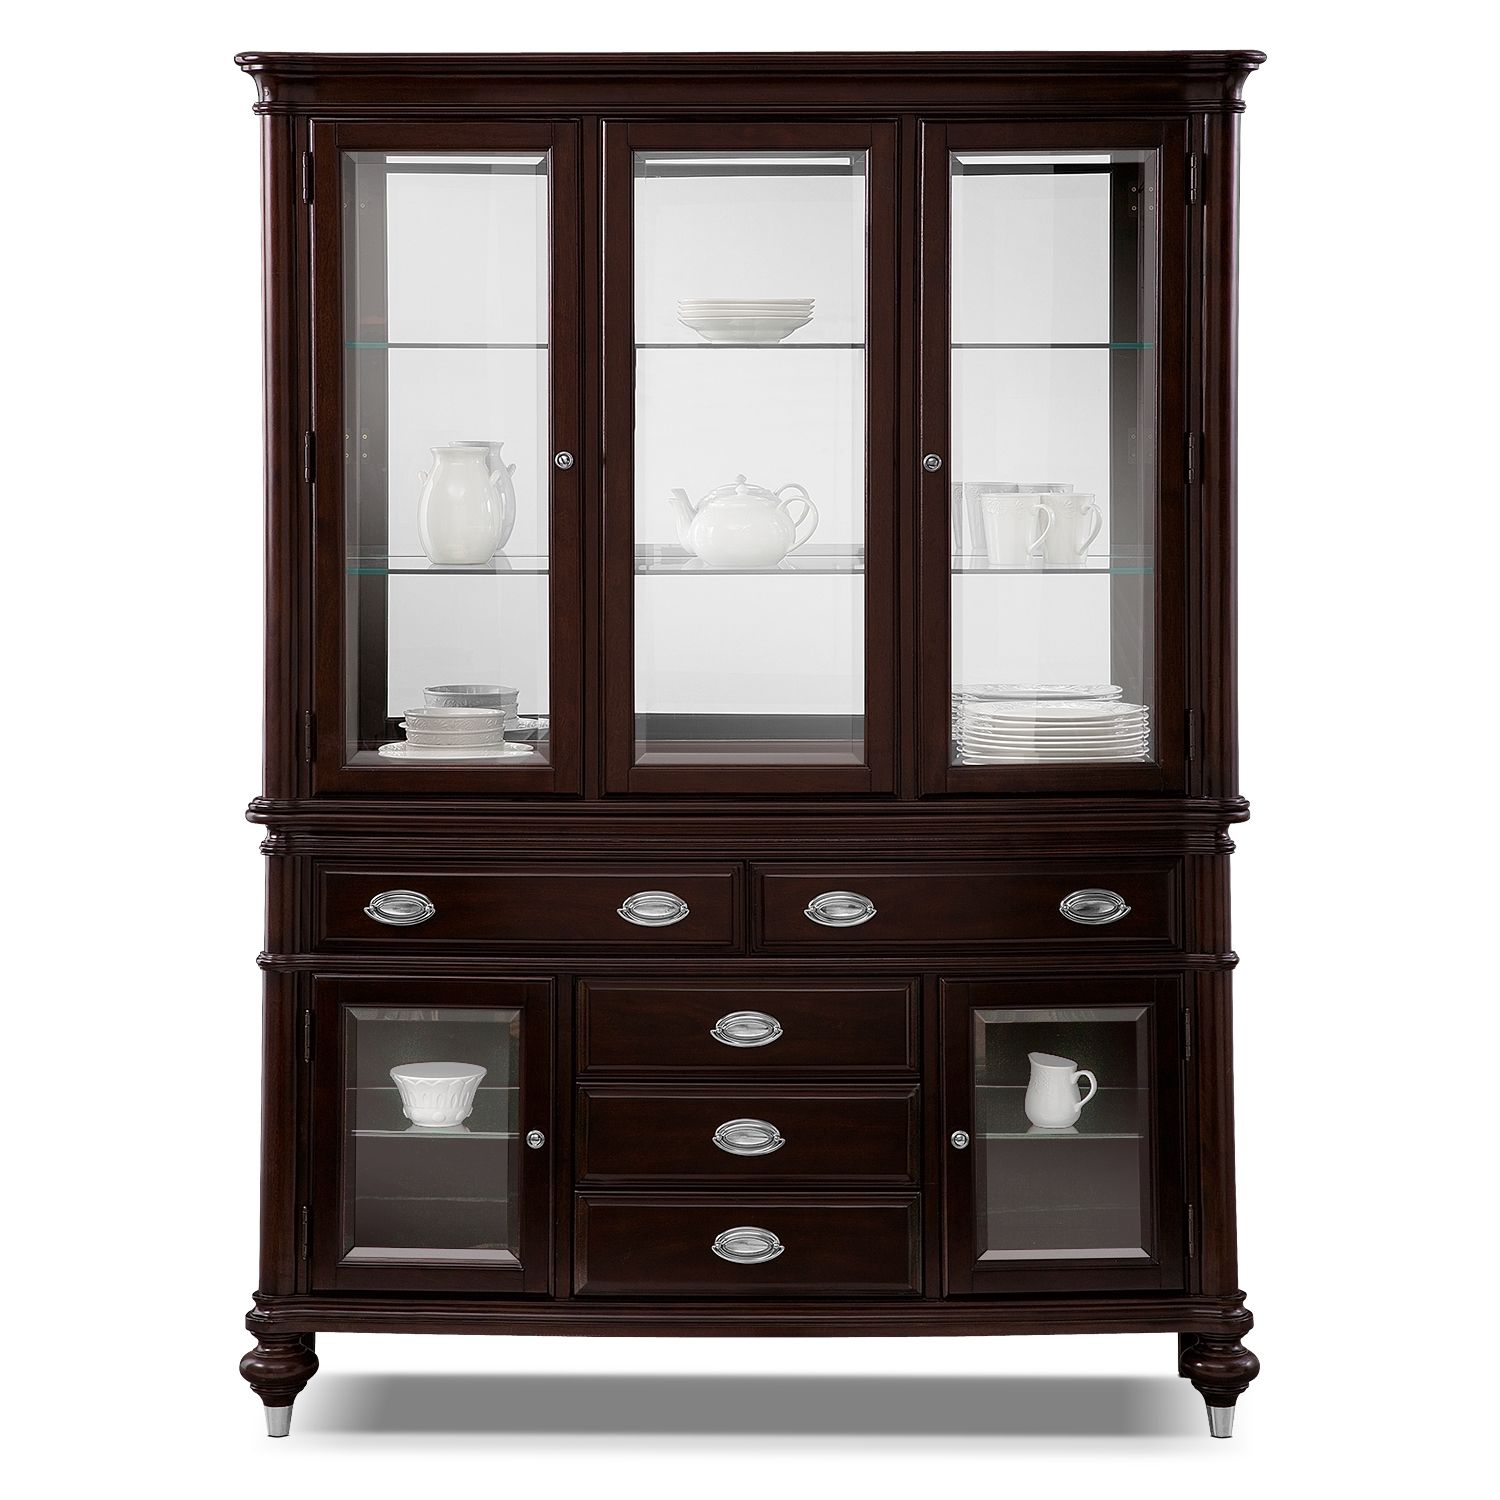 Dining Room Furniture Hutch Magnificent Esquire Buffet And Hutch  Value City Furniture  Our New House Decorating Design